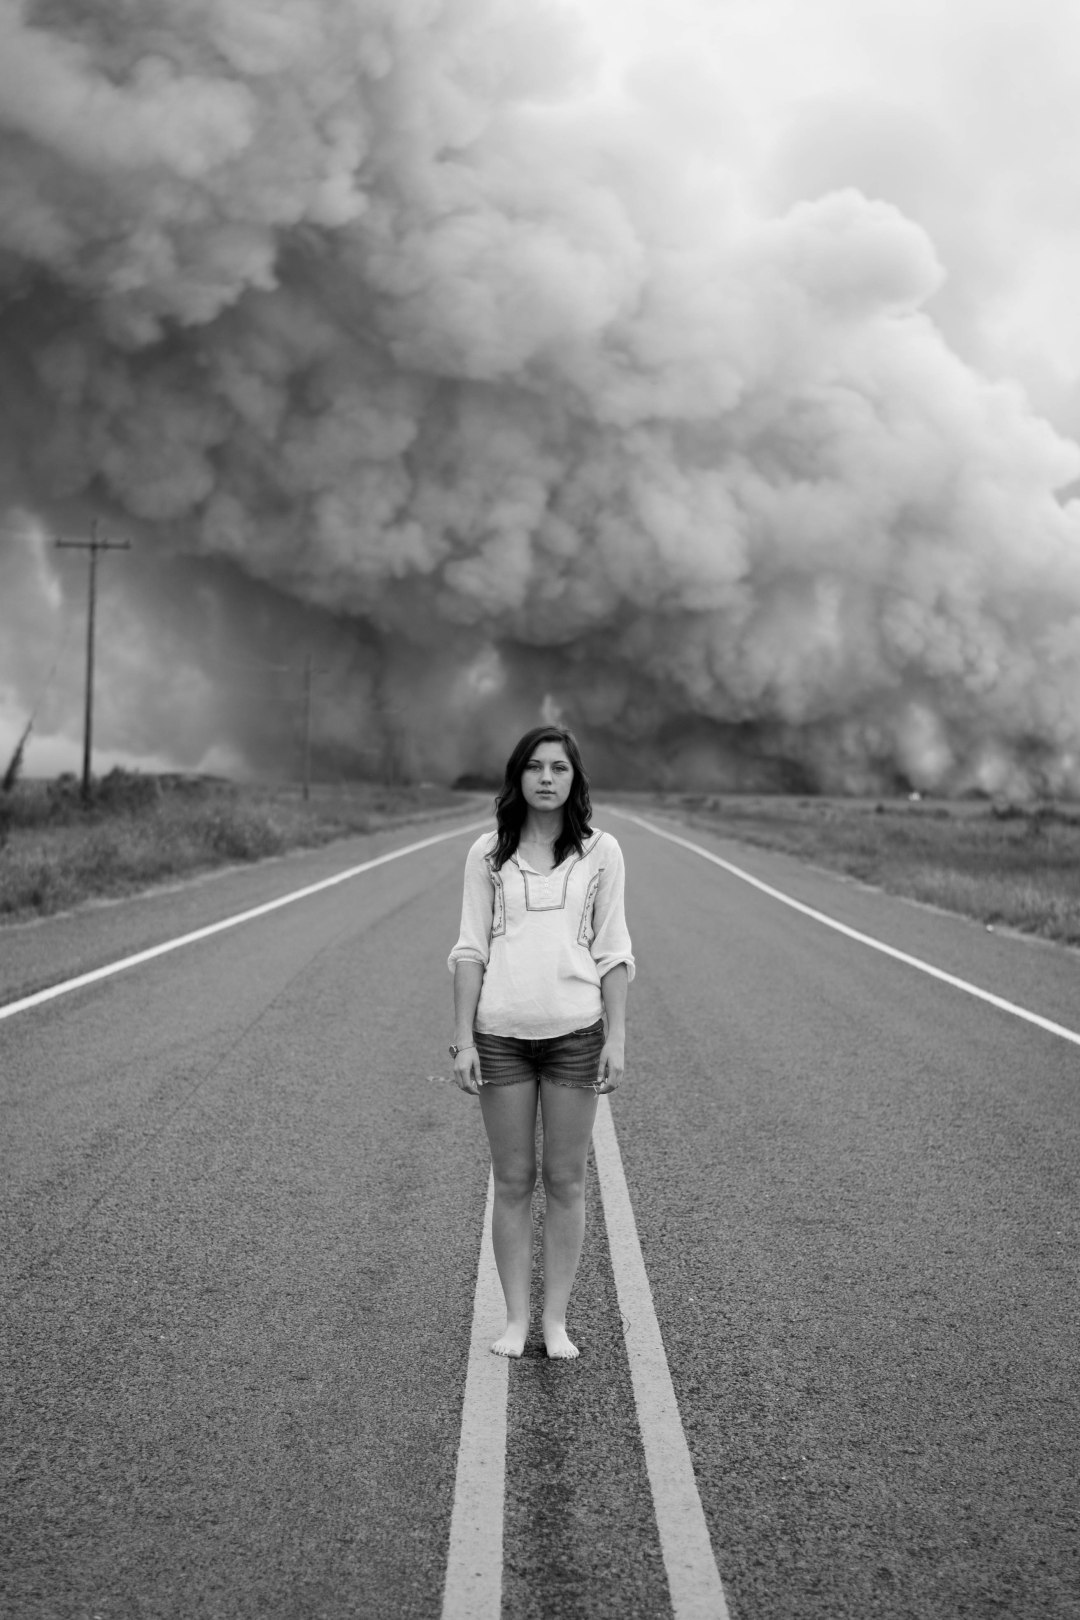 Cute Girl Wallpapers For Woman And Road Smoke Cloud Photo By Morgan Sessions